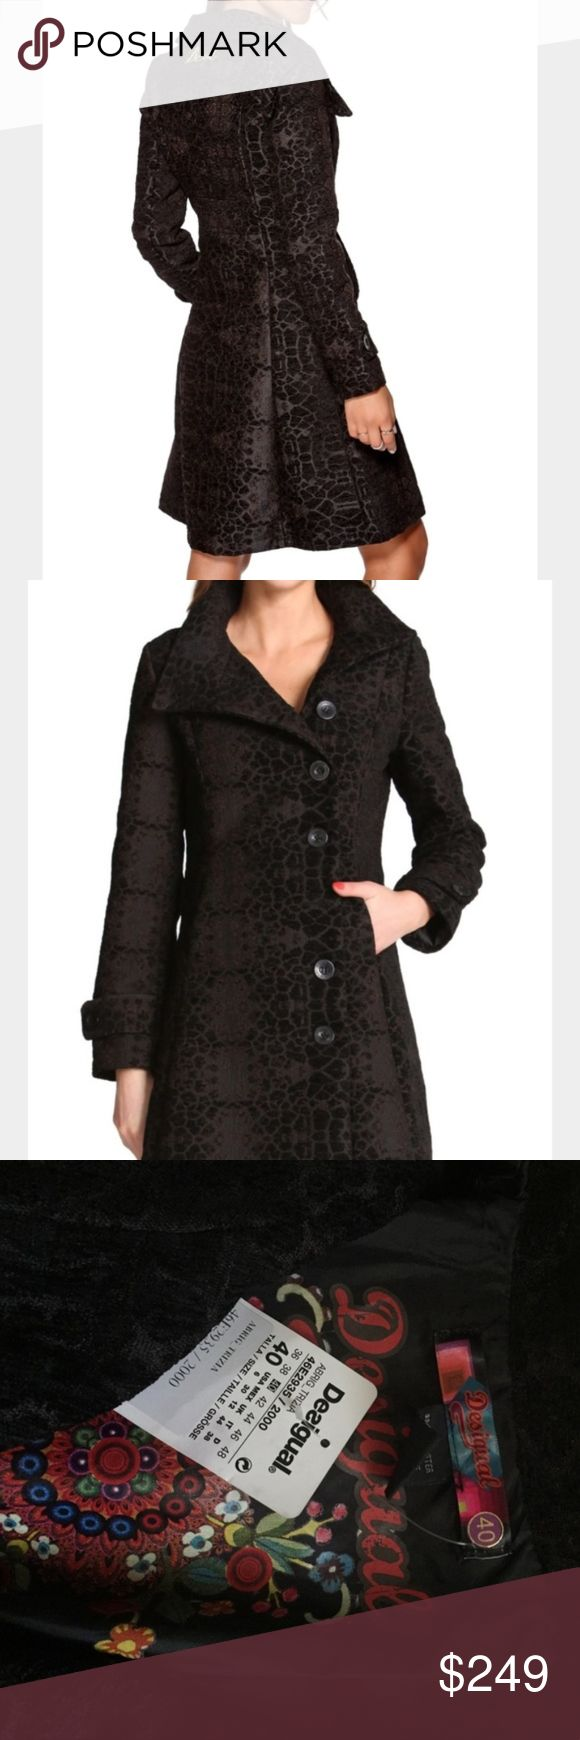 Desigual Coat Desigual Abrig Trizia Coat Brand New with Tag! Paid $2,200. Black textured giraffe print, Size 40 (USA 6) but could fit anyone from a S-L because of the buttons. Desigual Jackets & Coats